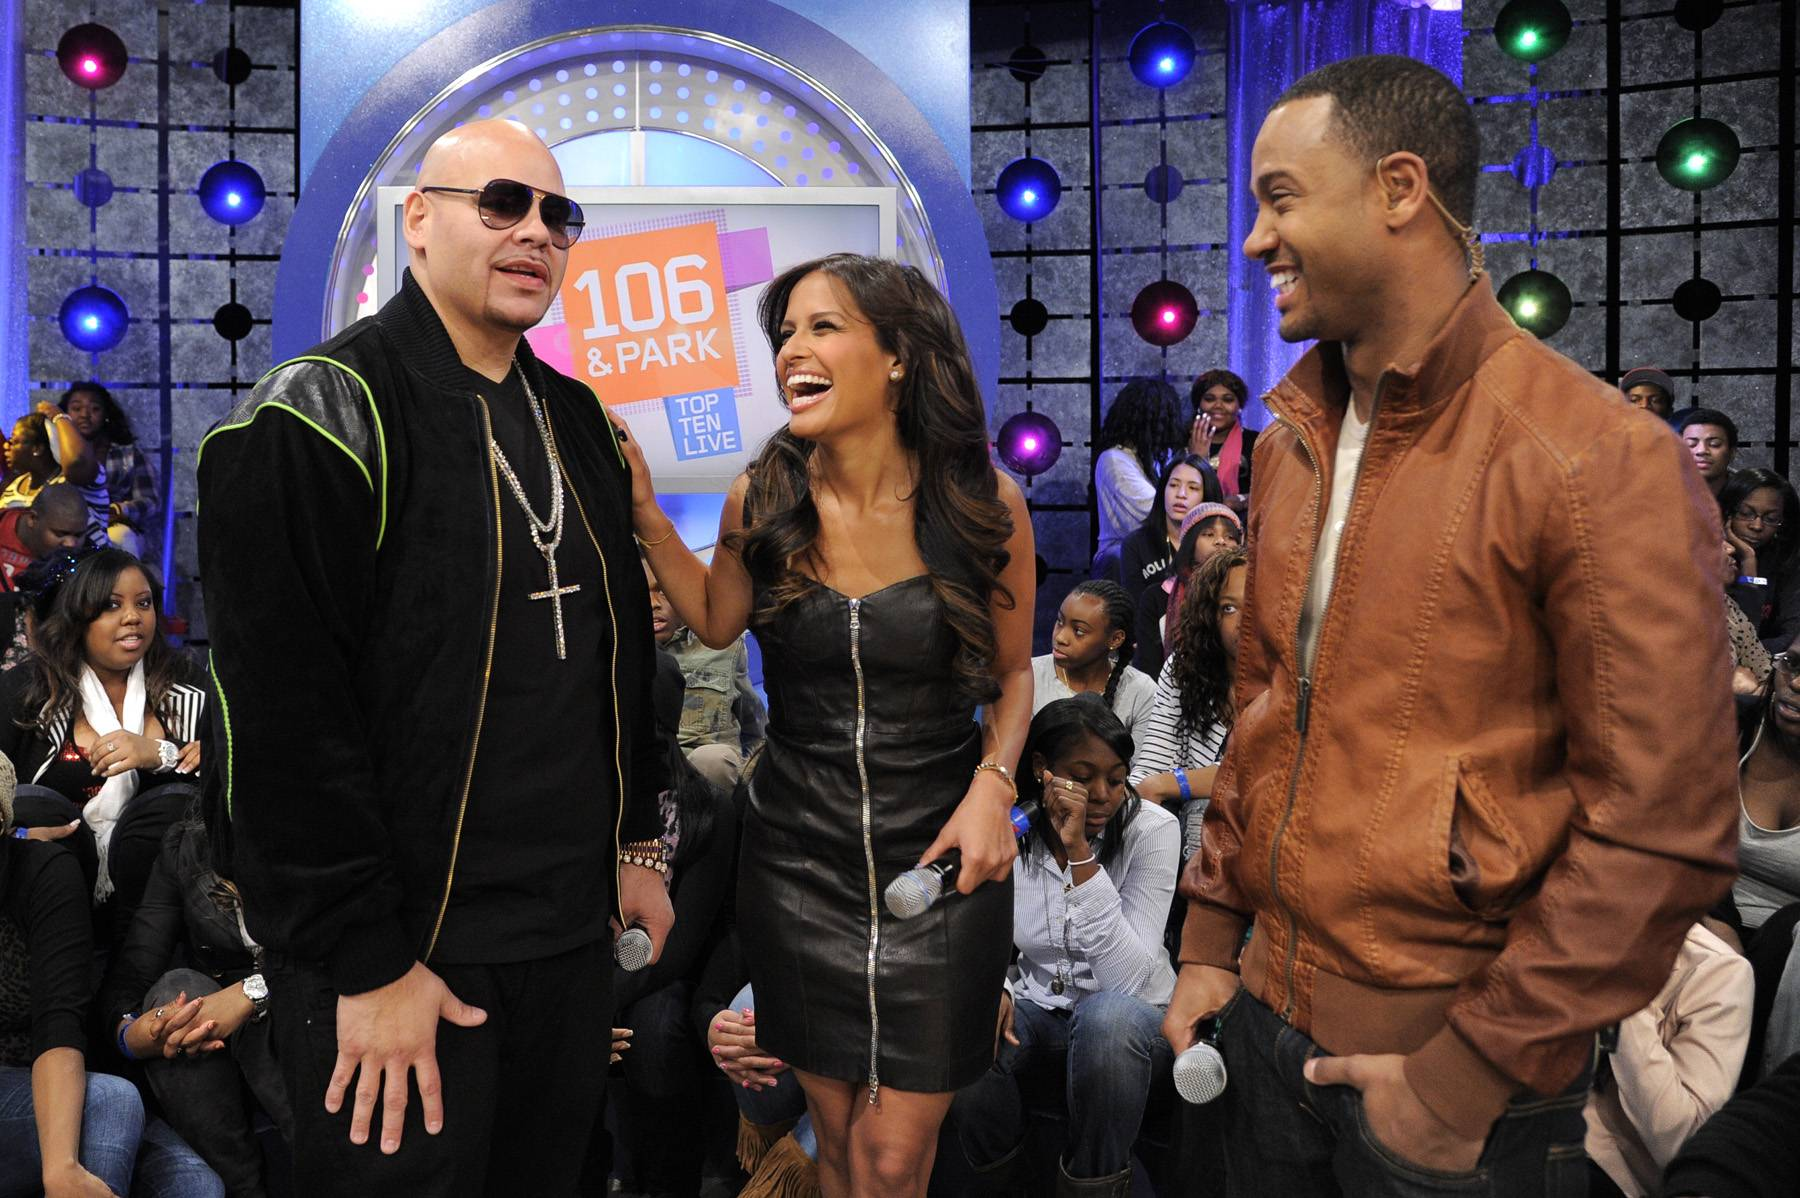 Whoa - Fat Joe and Rocsi Diaz and Terrence J chat during the commercial break at 106 & Park, January 3, 2012. (Photo: John Ricard / BET)